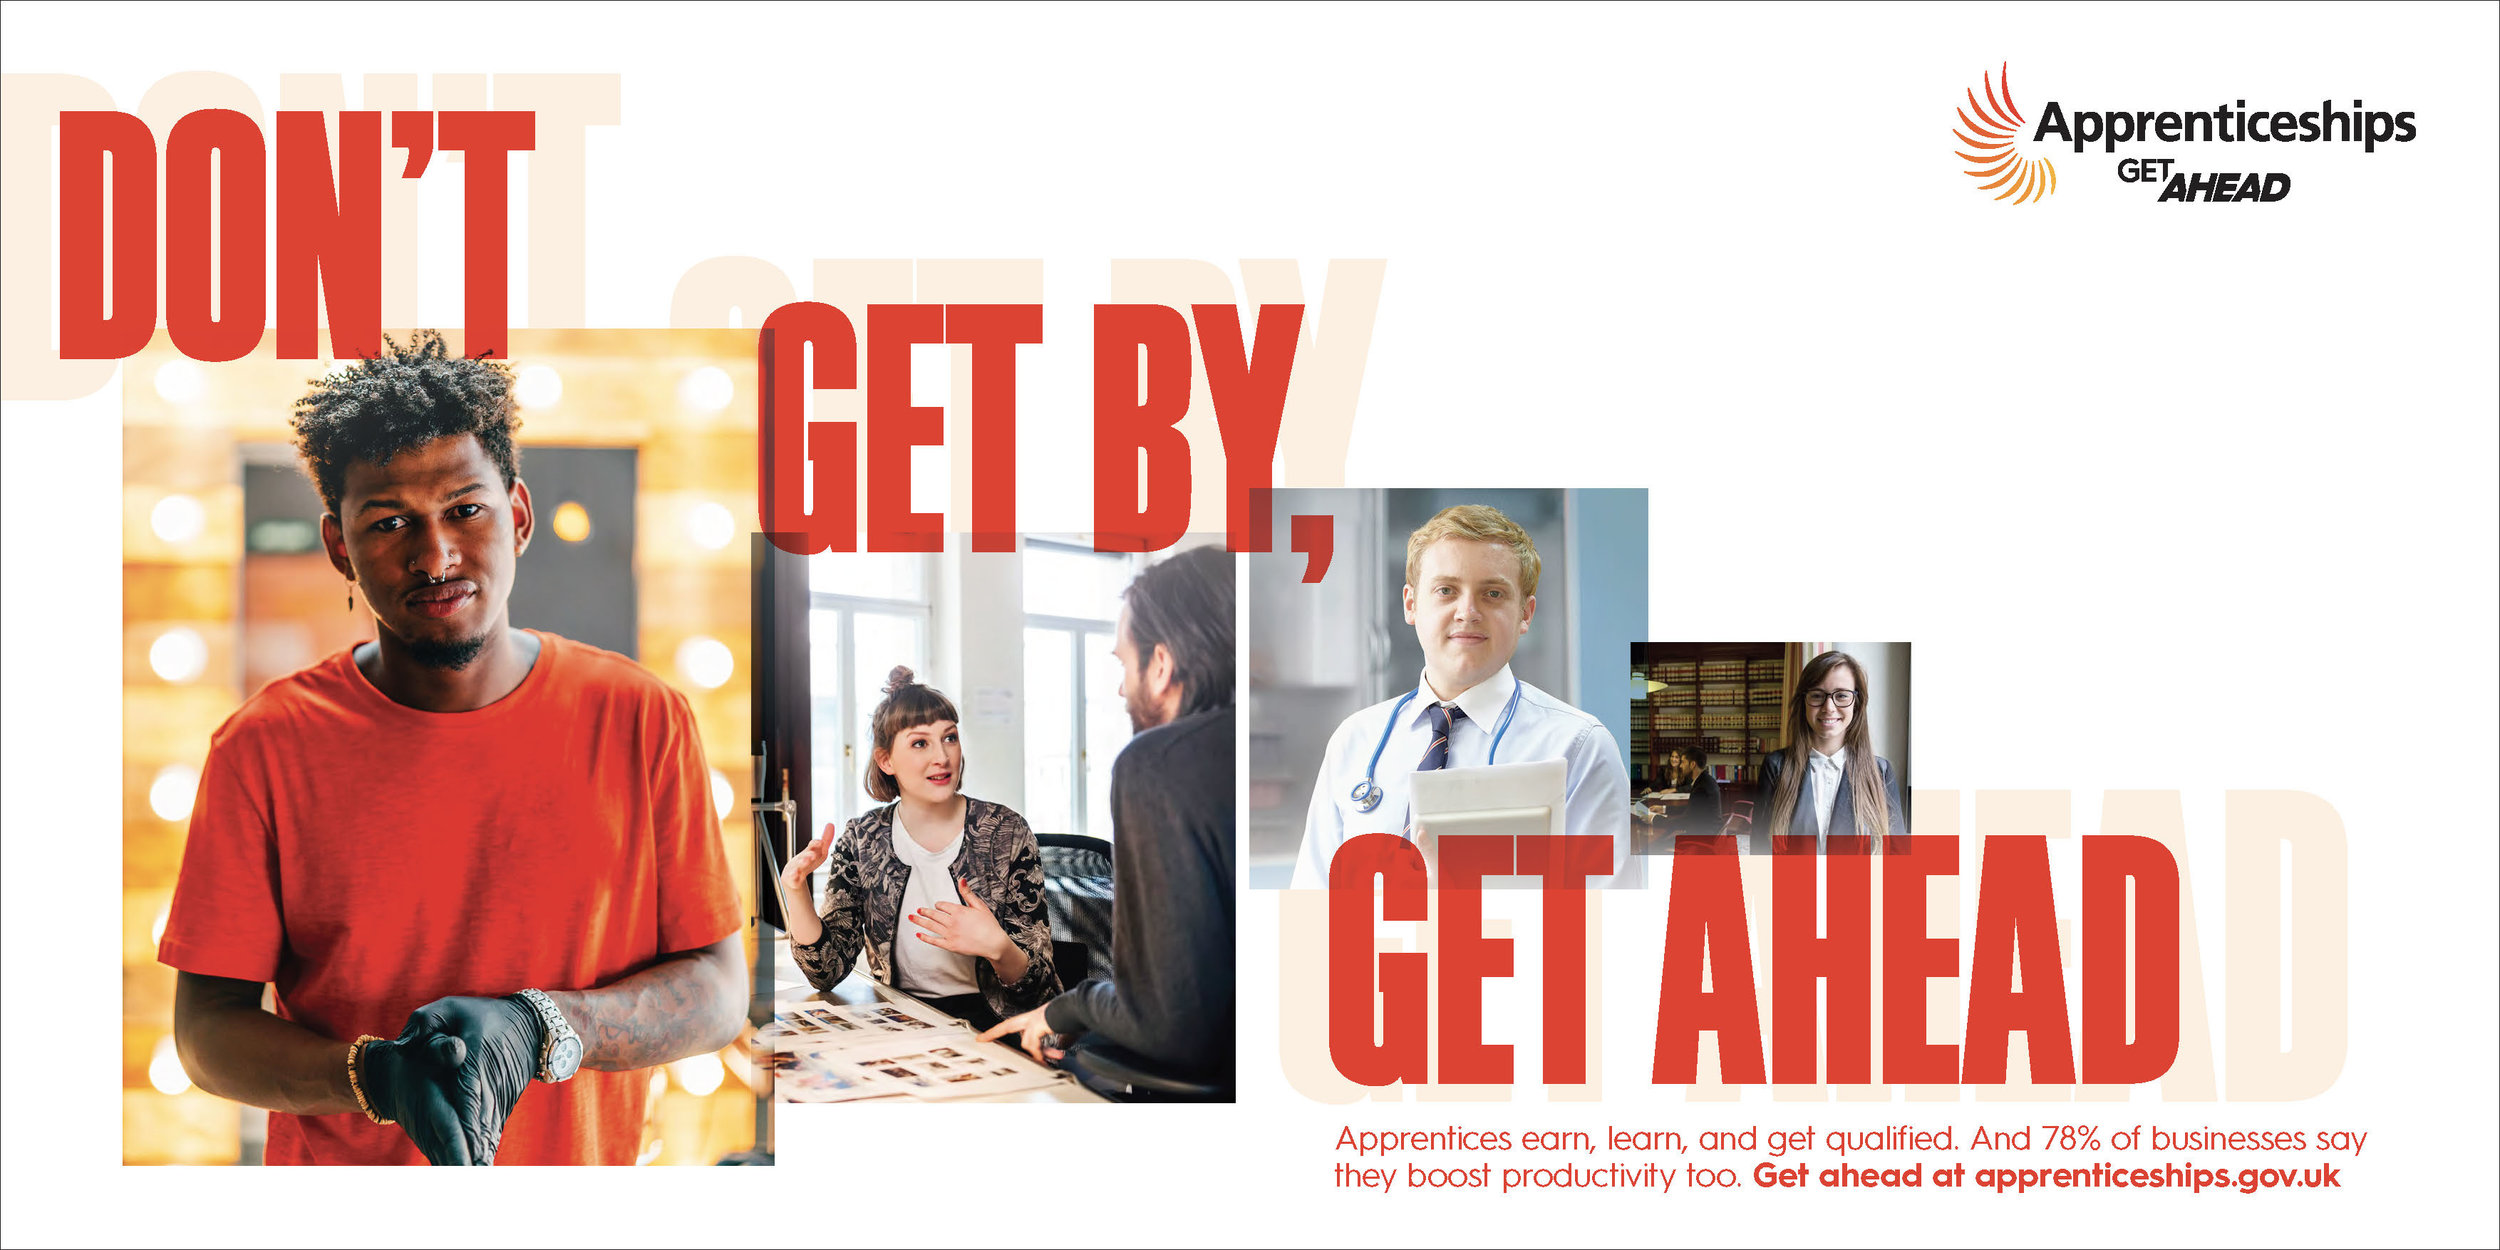 114905-Apprenticeships-48-Sheets-v4_Comments_Page_9_3508.jpg